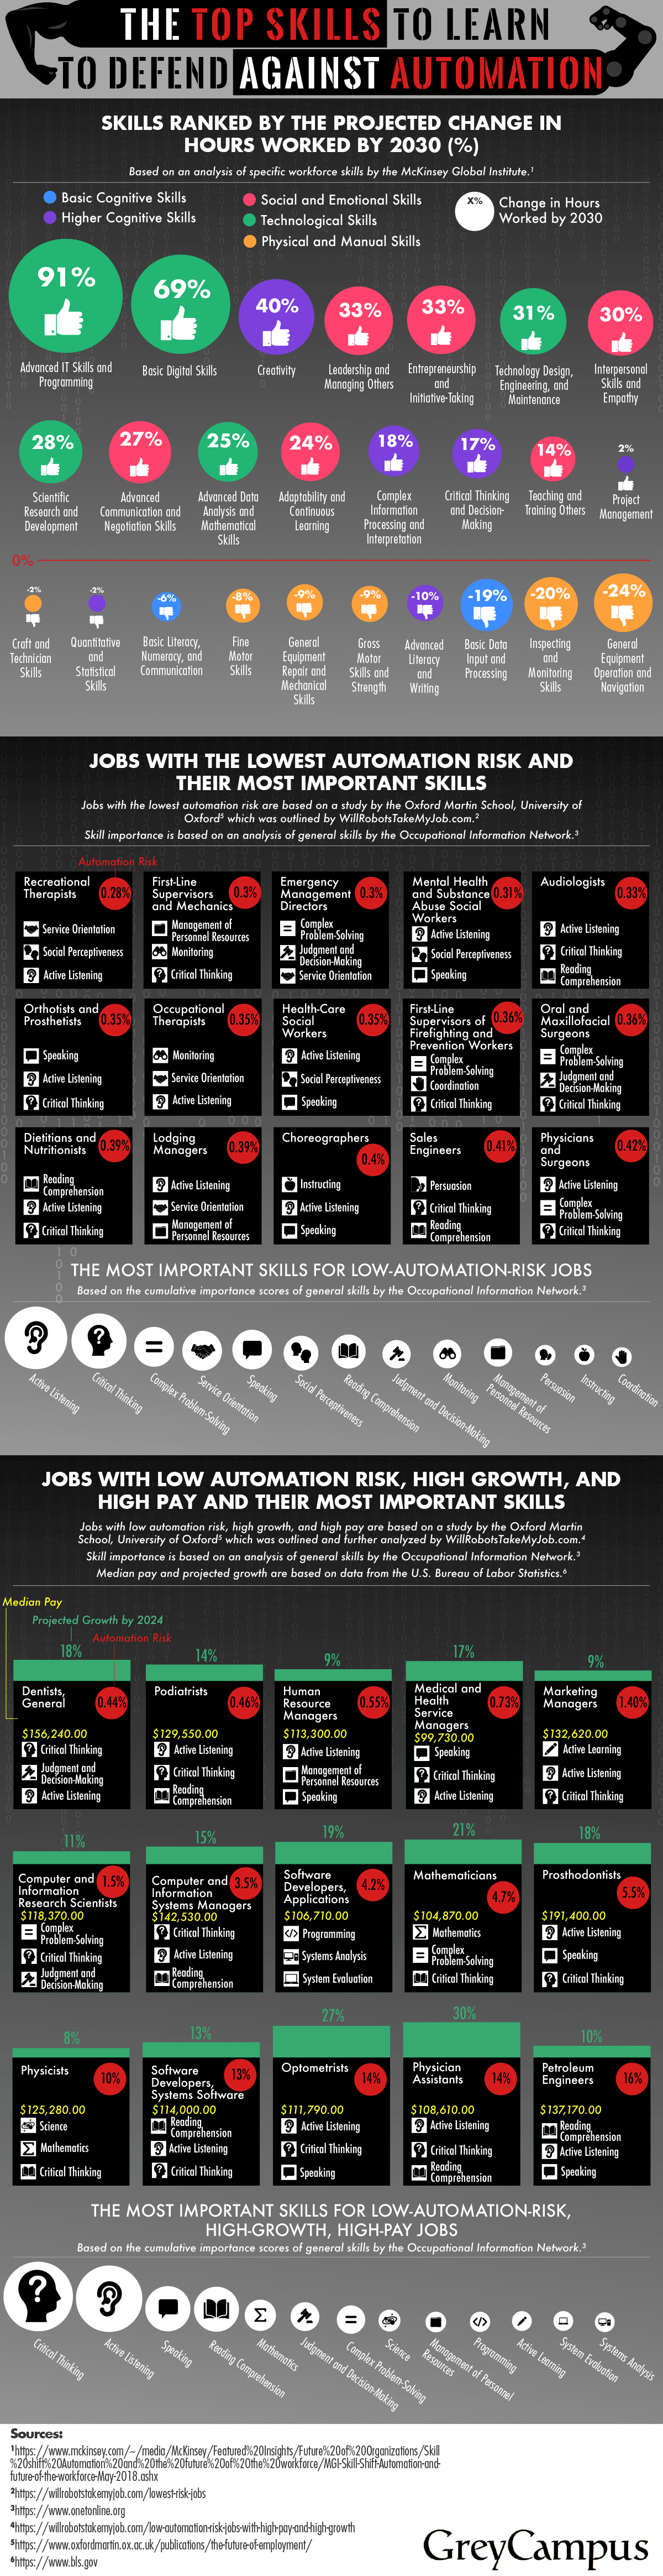 The Top Skills to Learn to Defend Against Automation - GreyCampus.com -Infographic